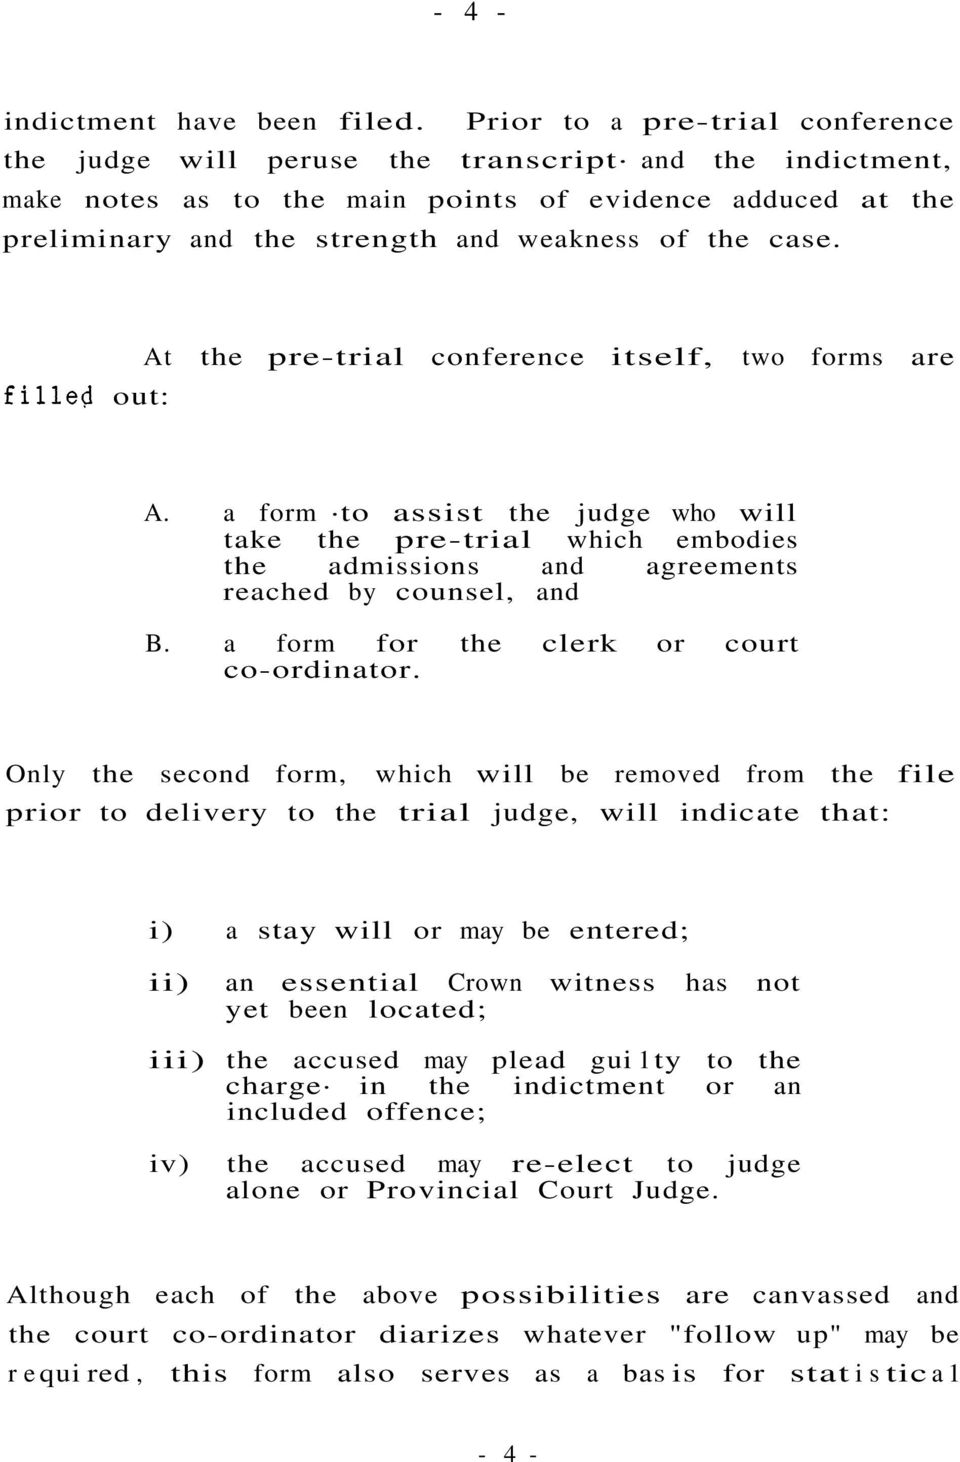 case. fille9 out: At the pre-trial conference itself, two forms are A. a form to assist the judge who will take the pre-trial which embodies the admissions and agreements reached by counsel, and B.